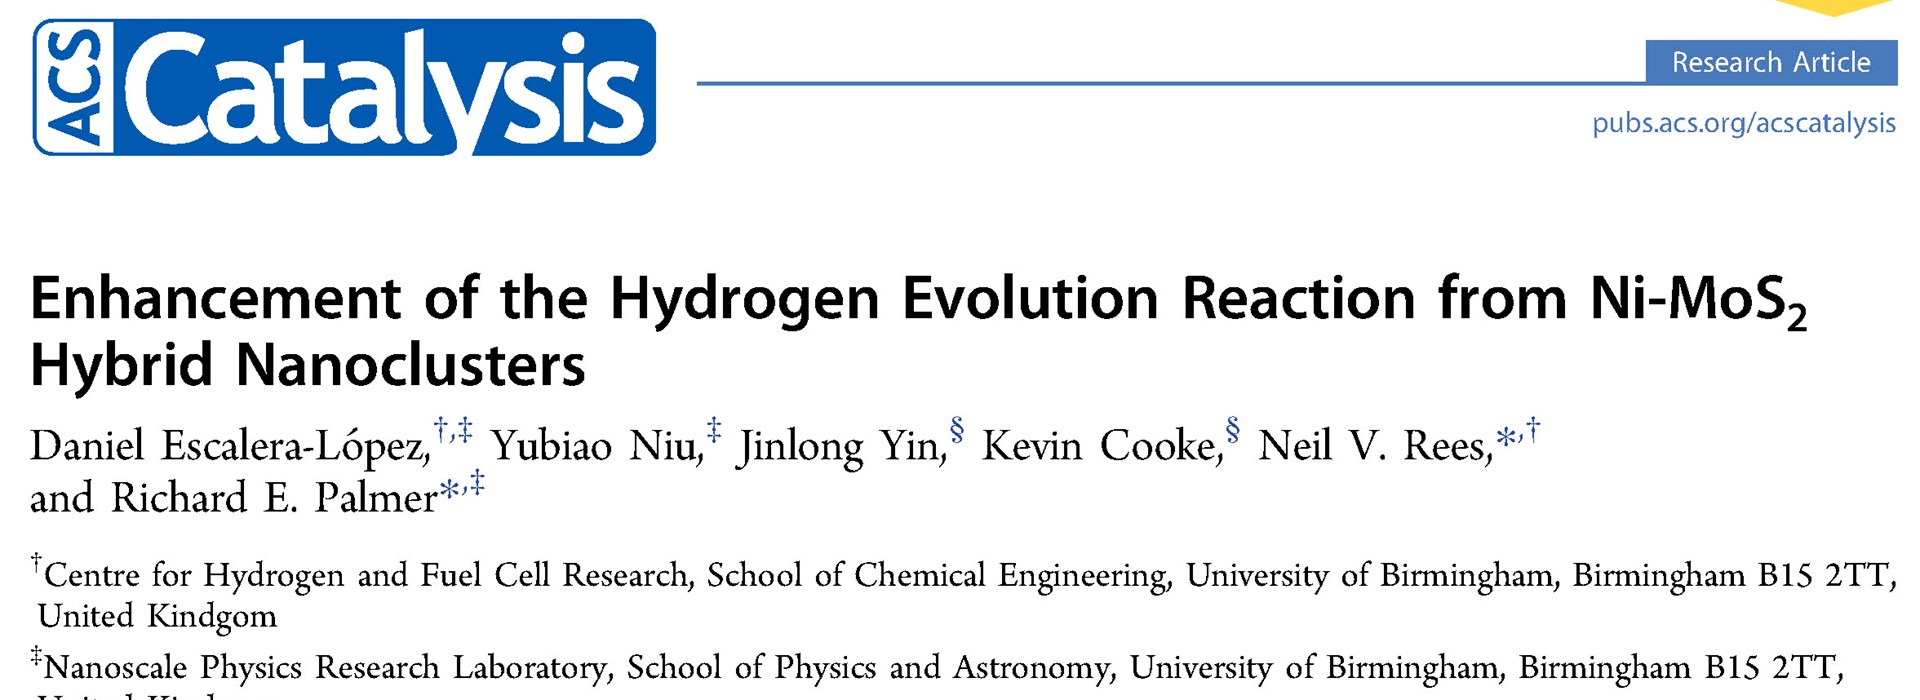 Hydrogen Evolution with Ni-MoS2 Nanoclusters